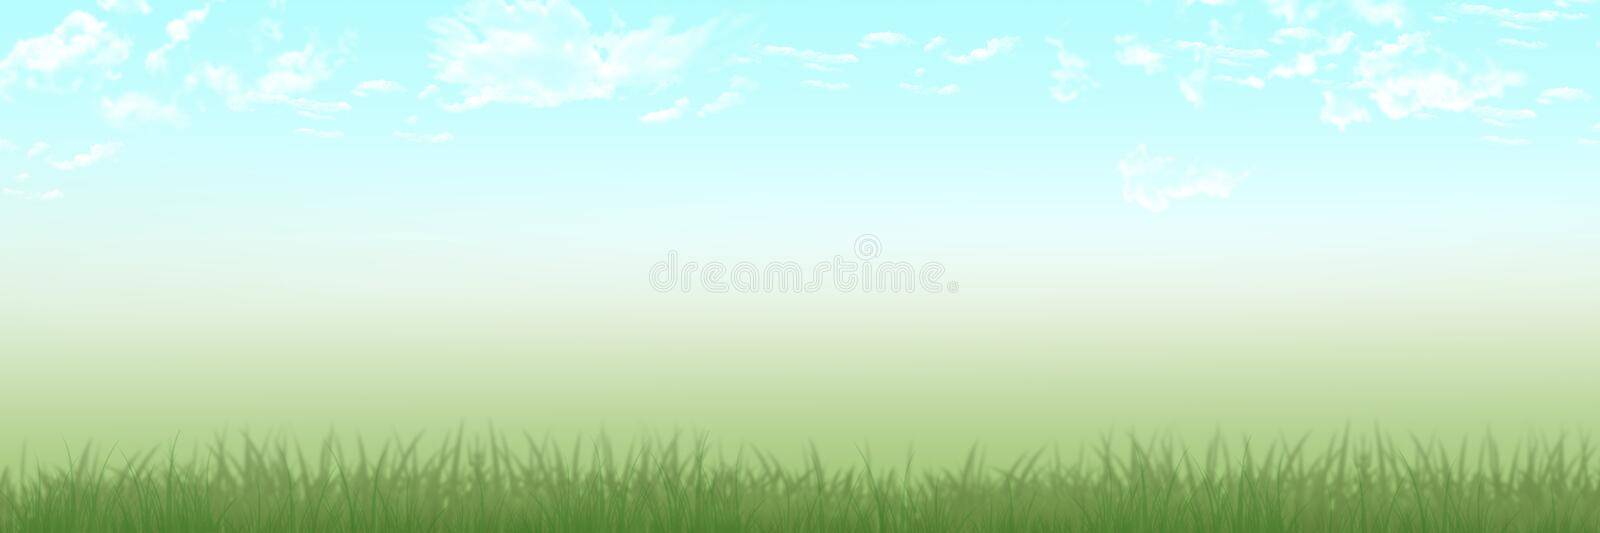 Panoramic Spring and summer scene grass meadow with clear blue skies with clouds background. Perfect for header banner party room for writing royalty free illustration